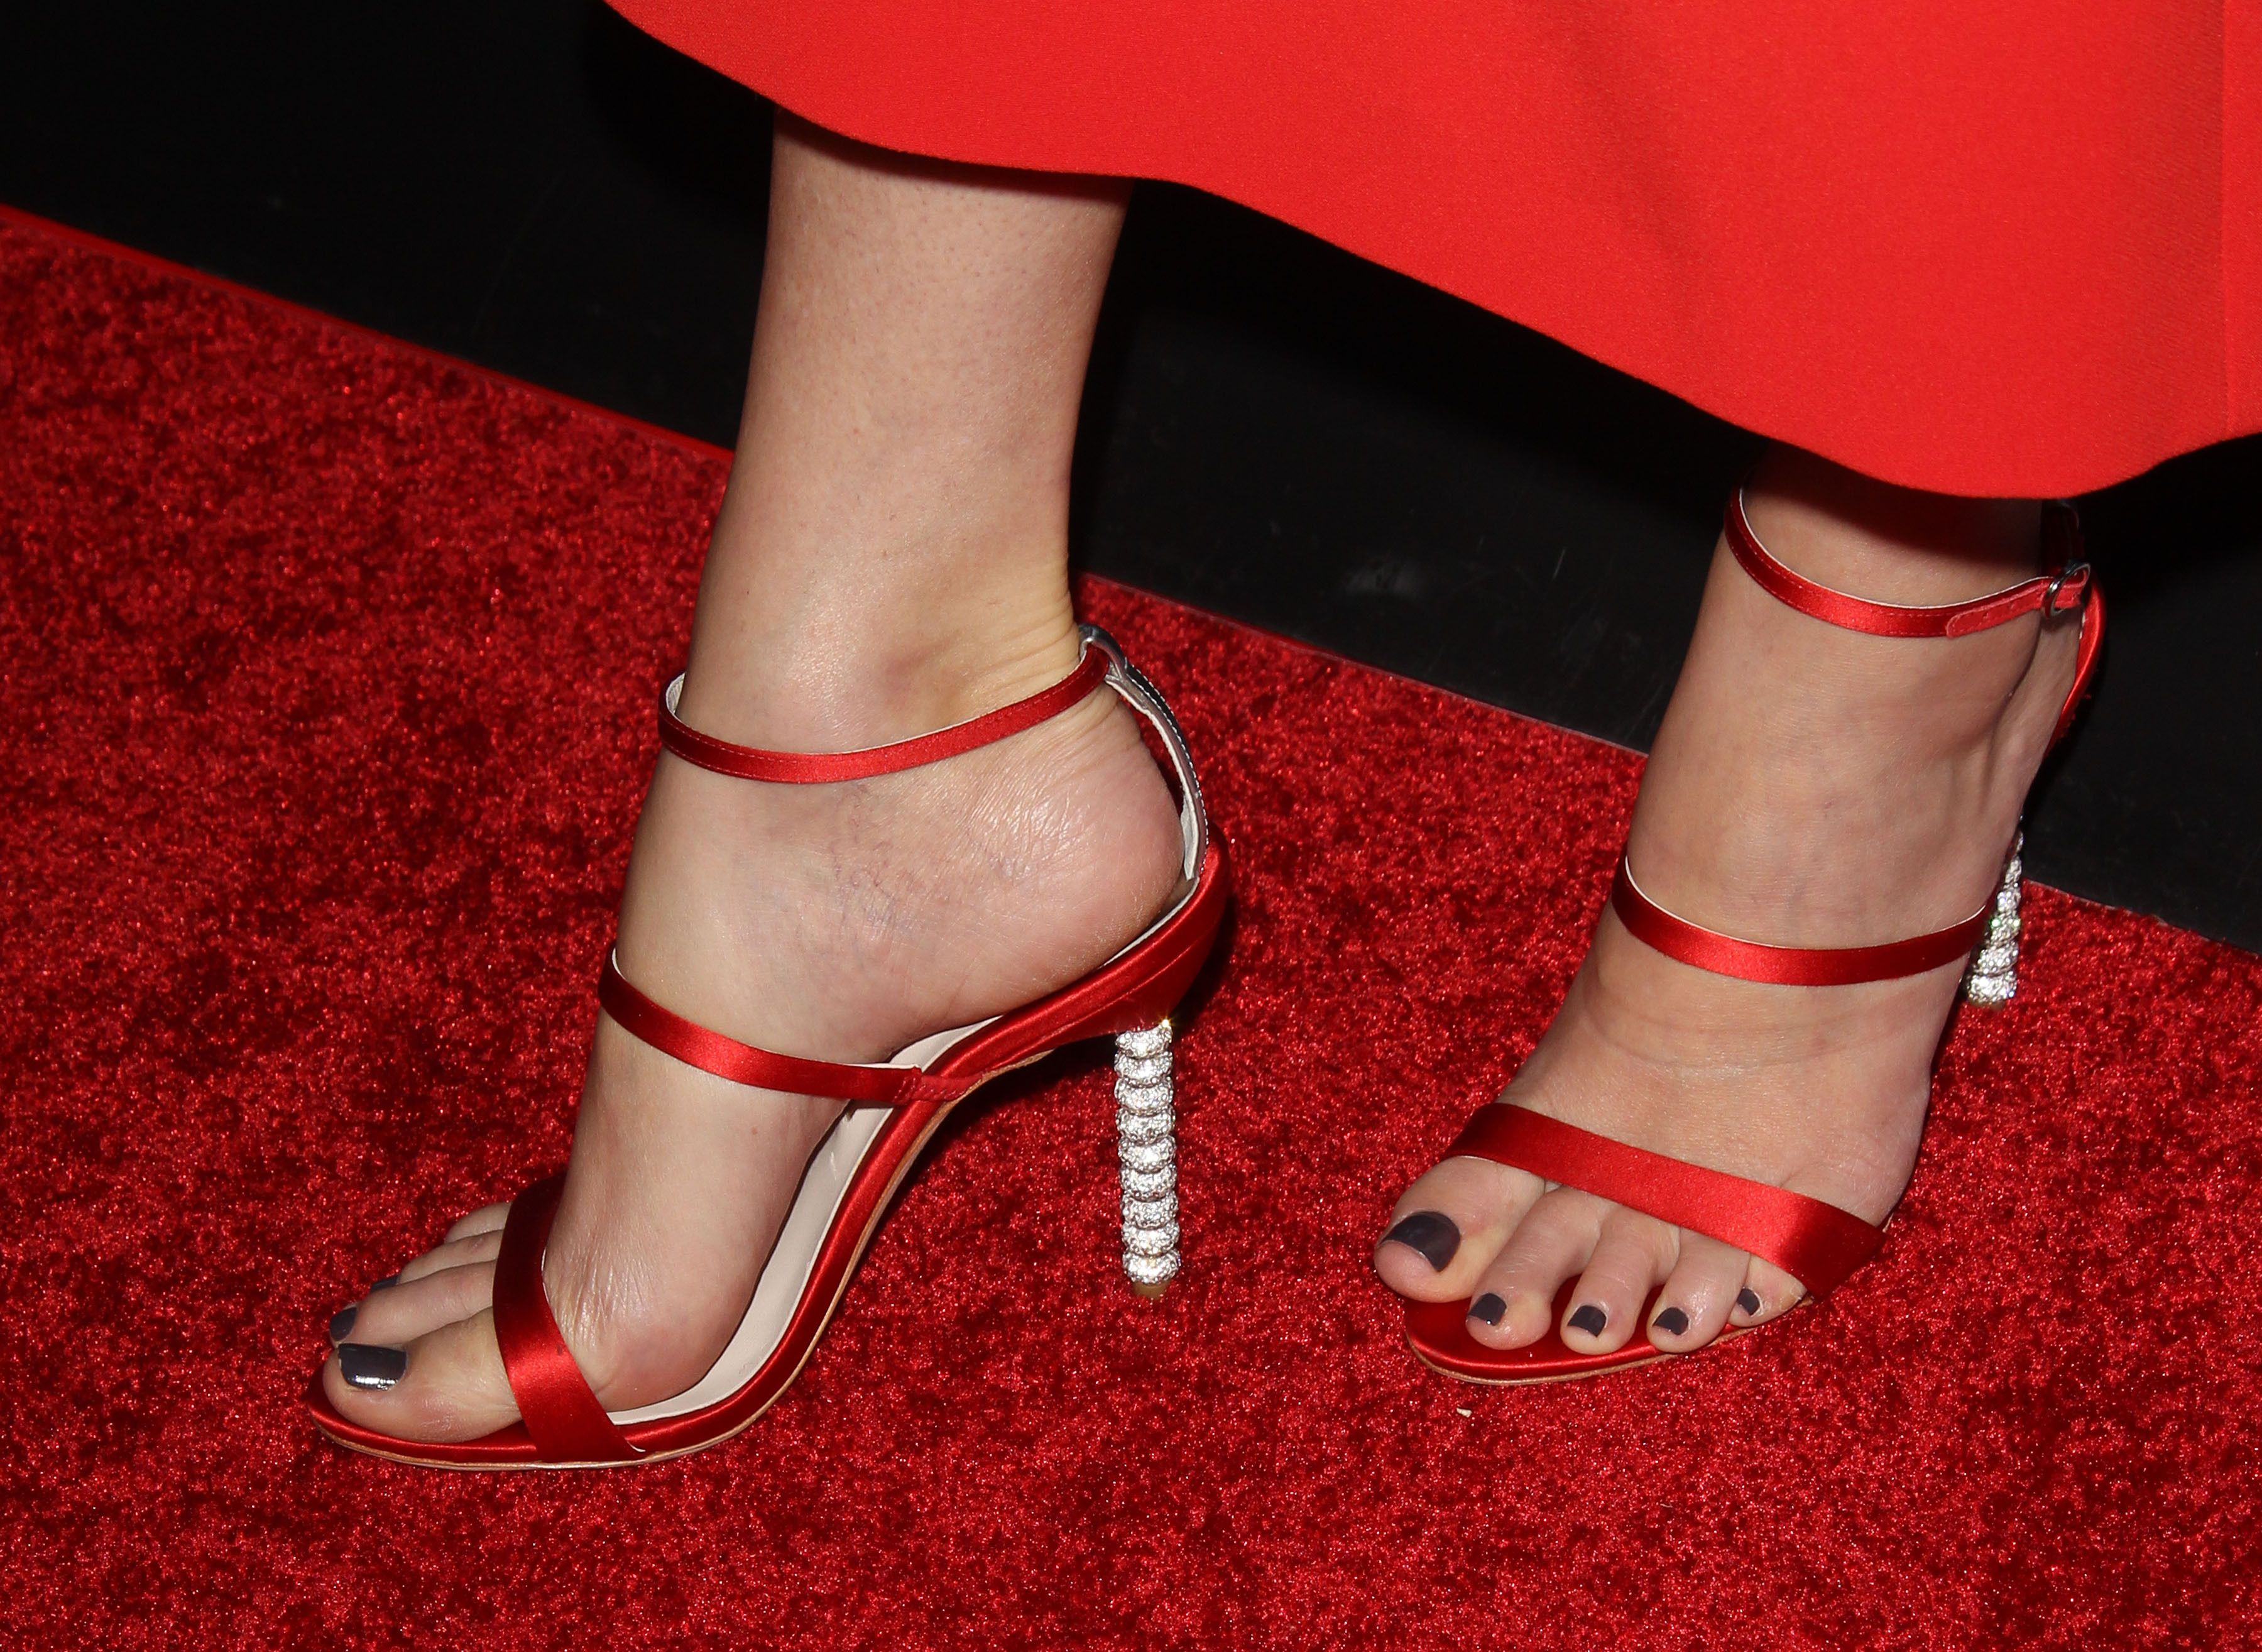 14 Celebrities With Quirky Body Parts - Everyday Health